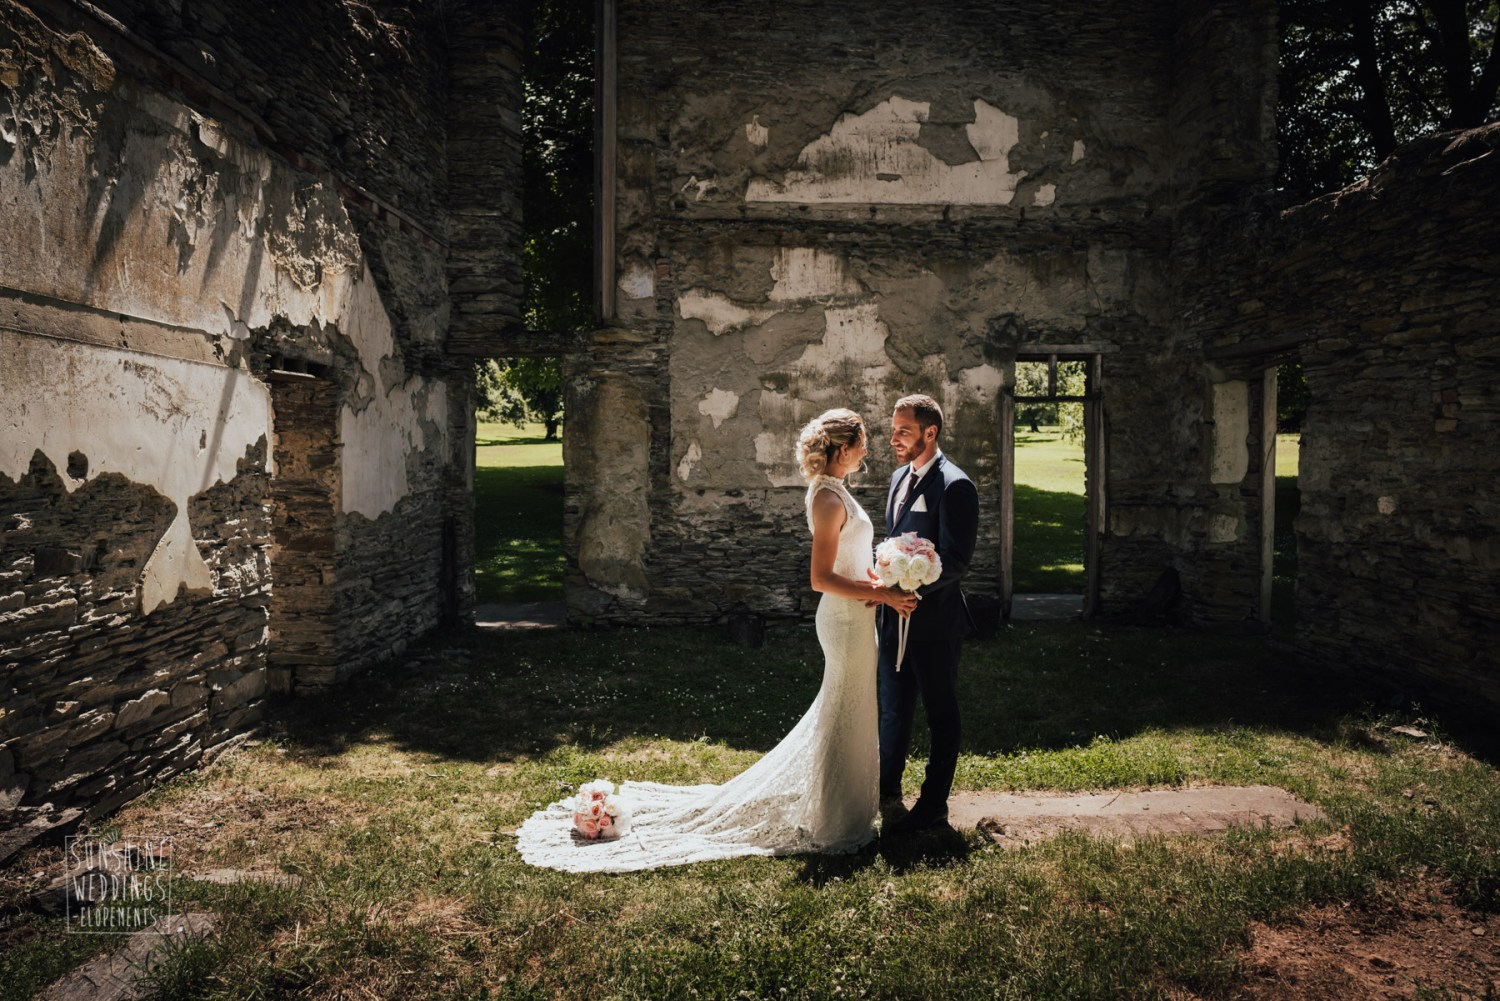 Thurlby Domain wedding photographer